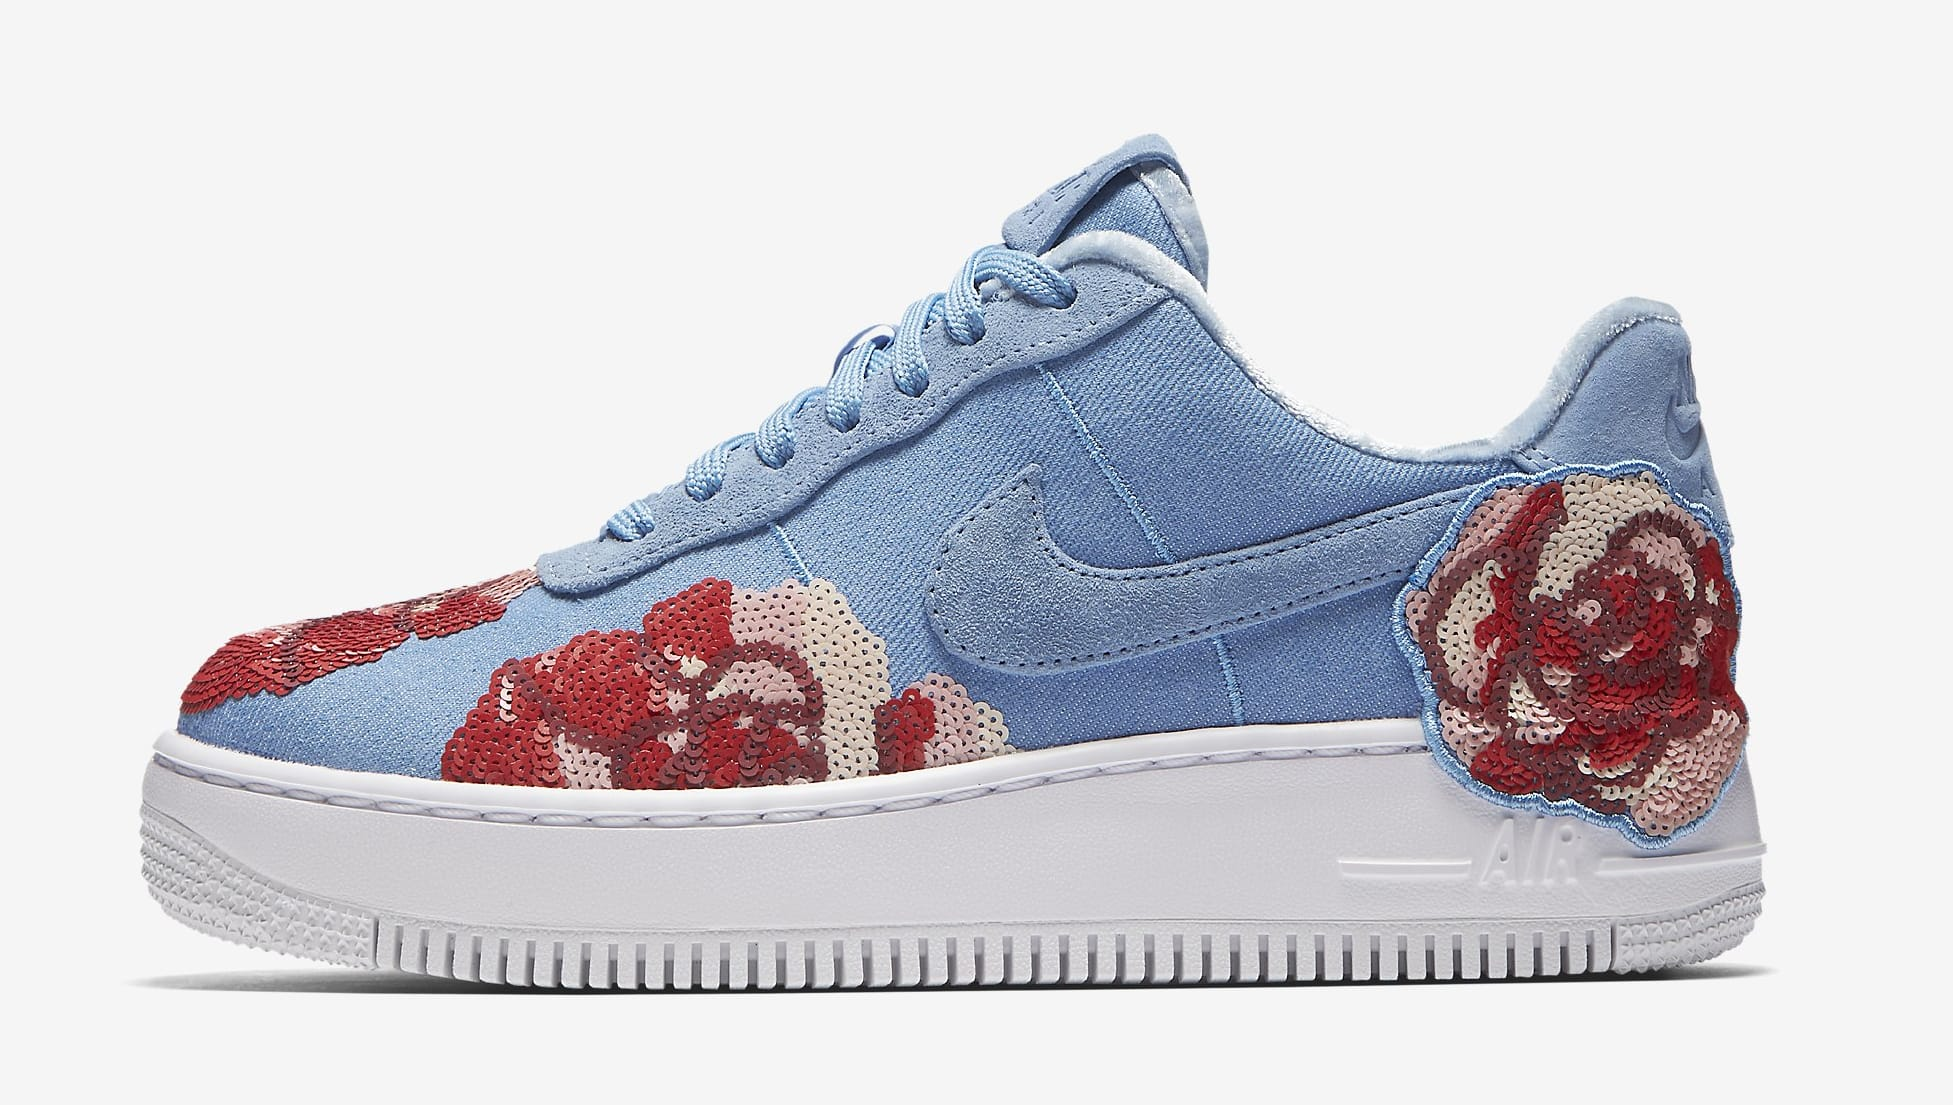 Nike Air Force 1 Low Floral Sequin Pack 898421-402 (Lateral)